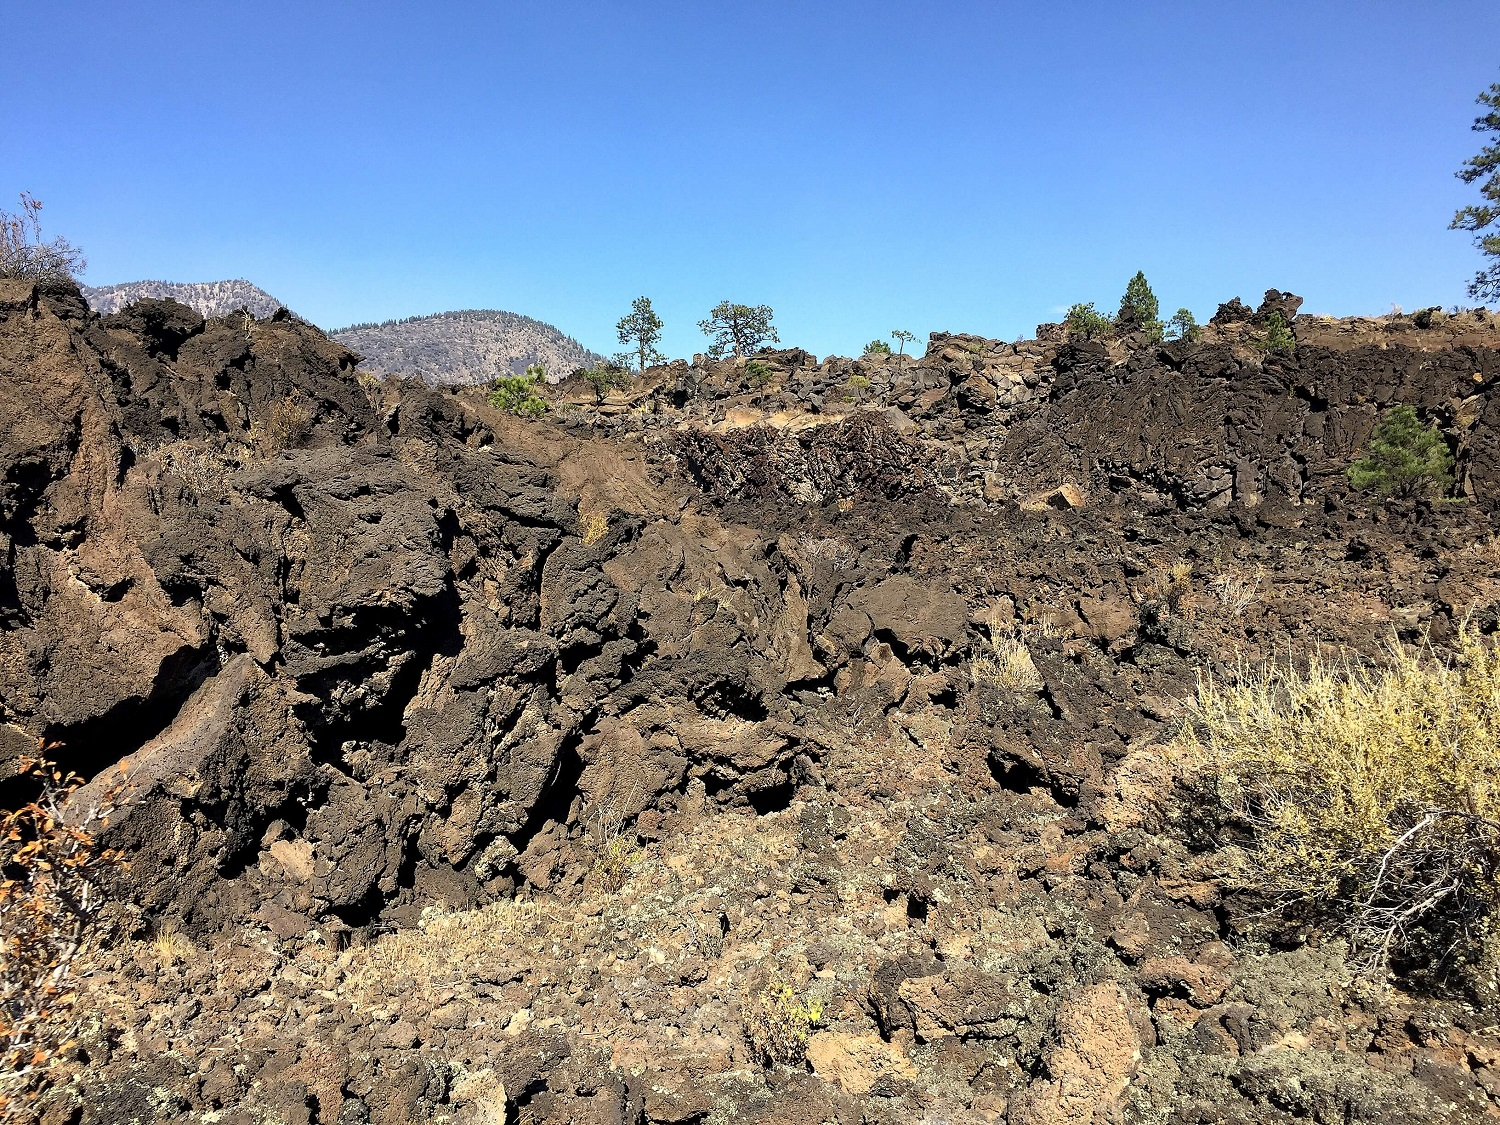 Wrestling with templates, coding, internet issues, etc. is like being in the midst of this lava flow - it's sharp, brittle, unforgiving, nasty stuff.